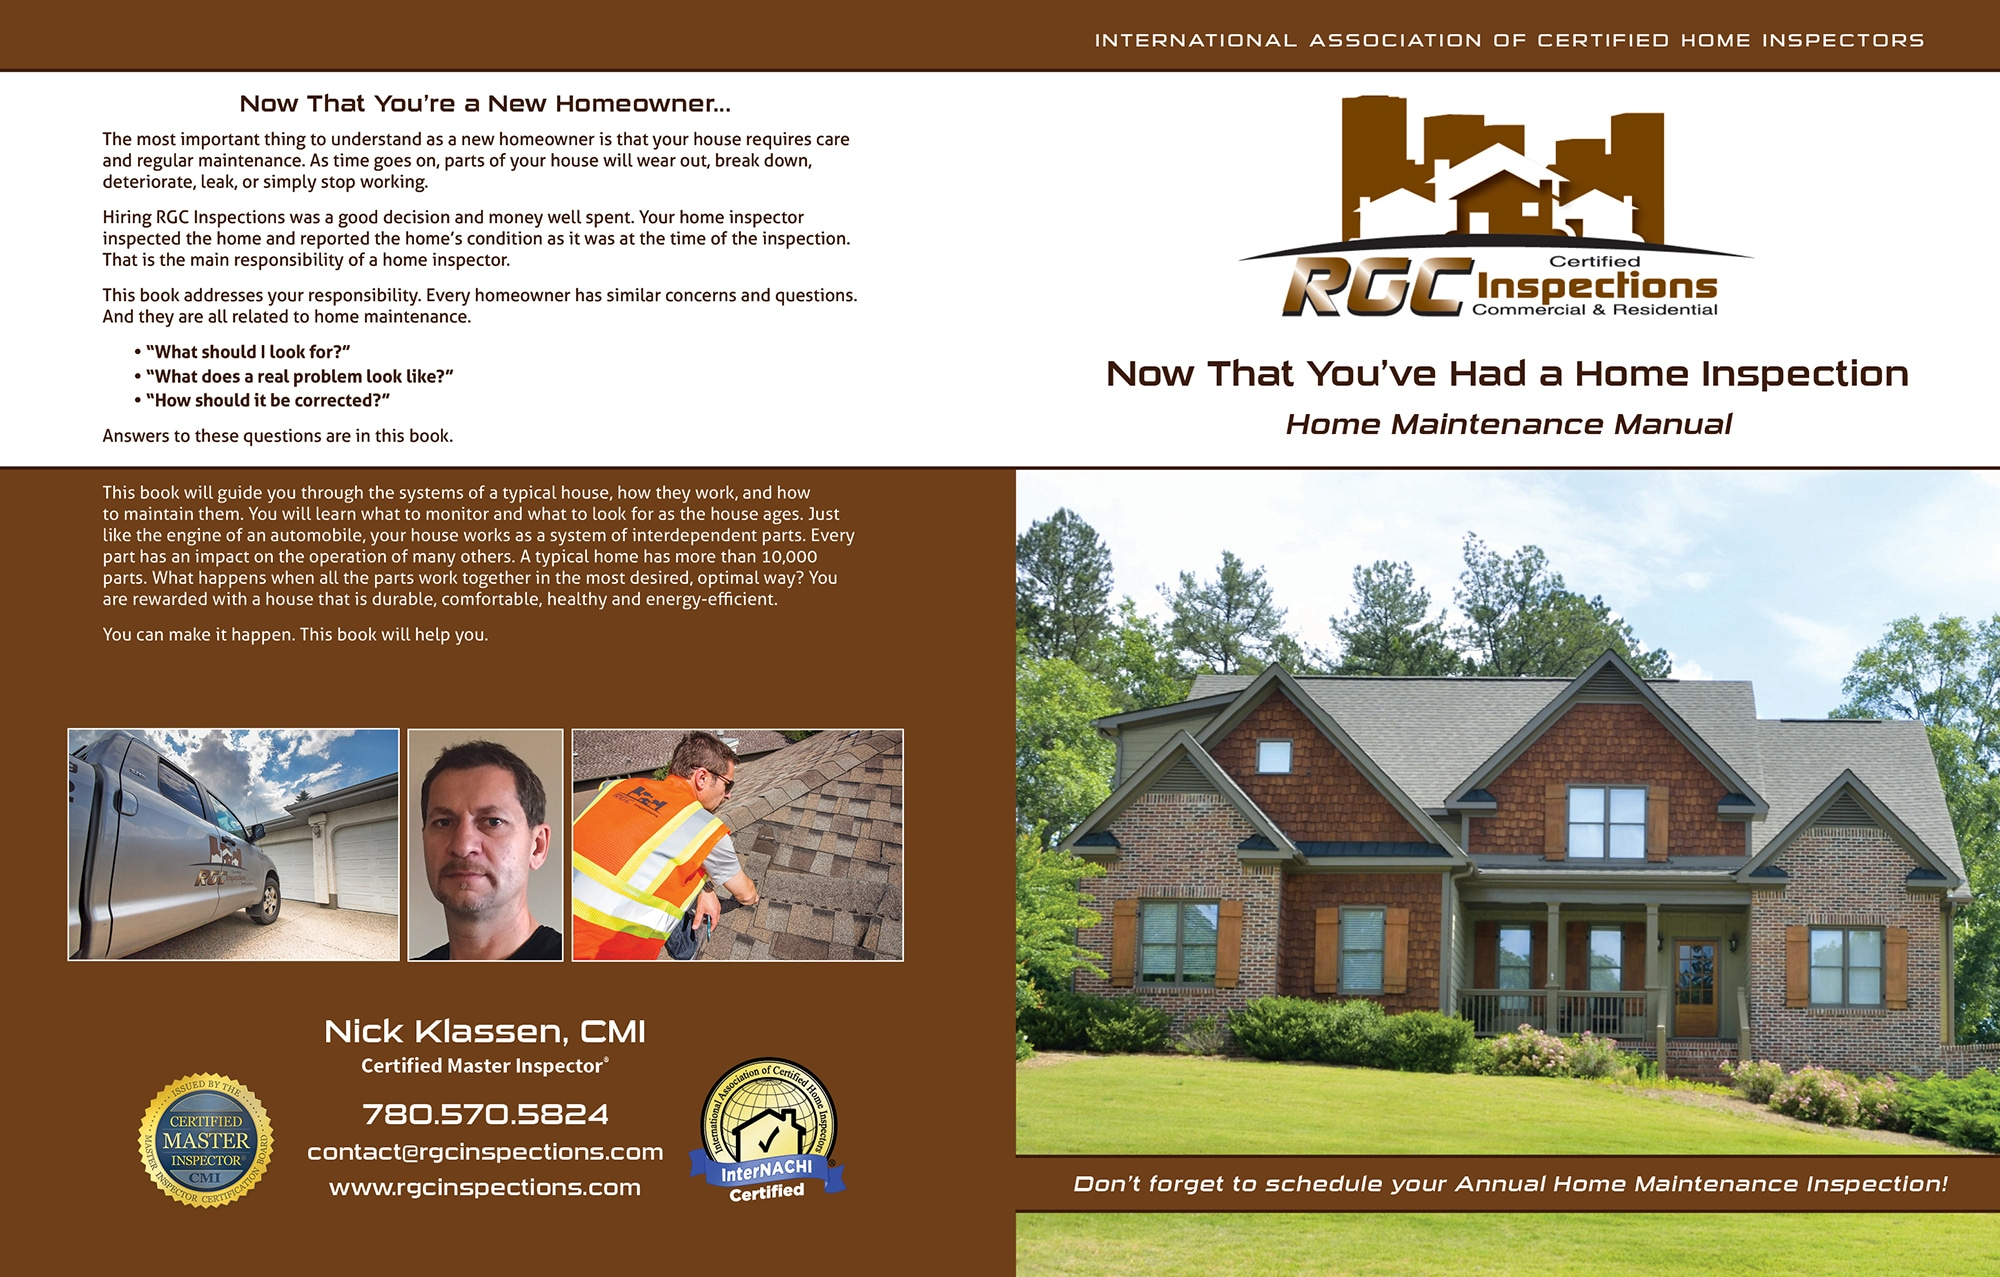 Custom Home Maintenance Book for RCC Inspections.